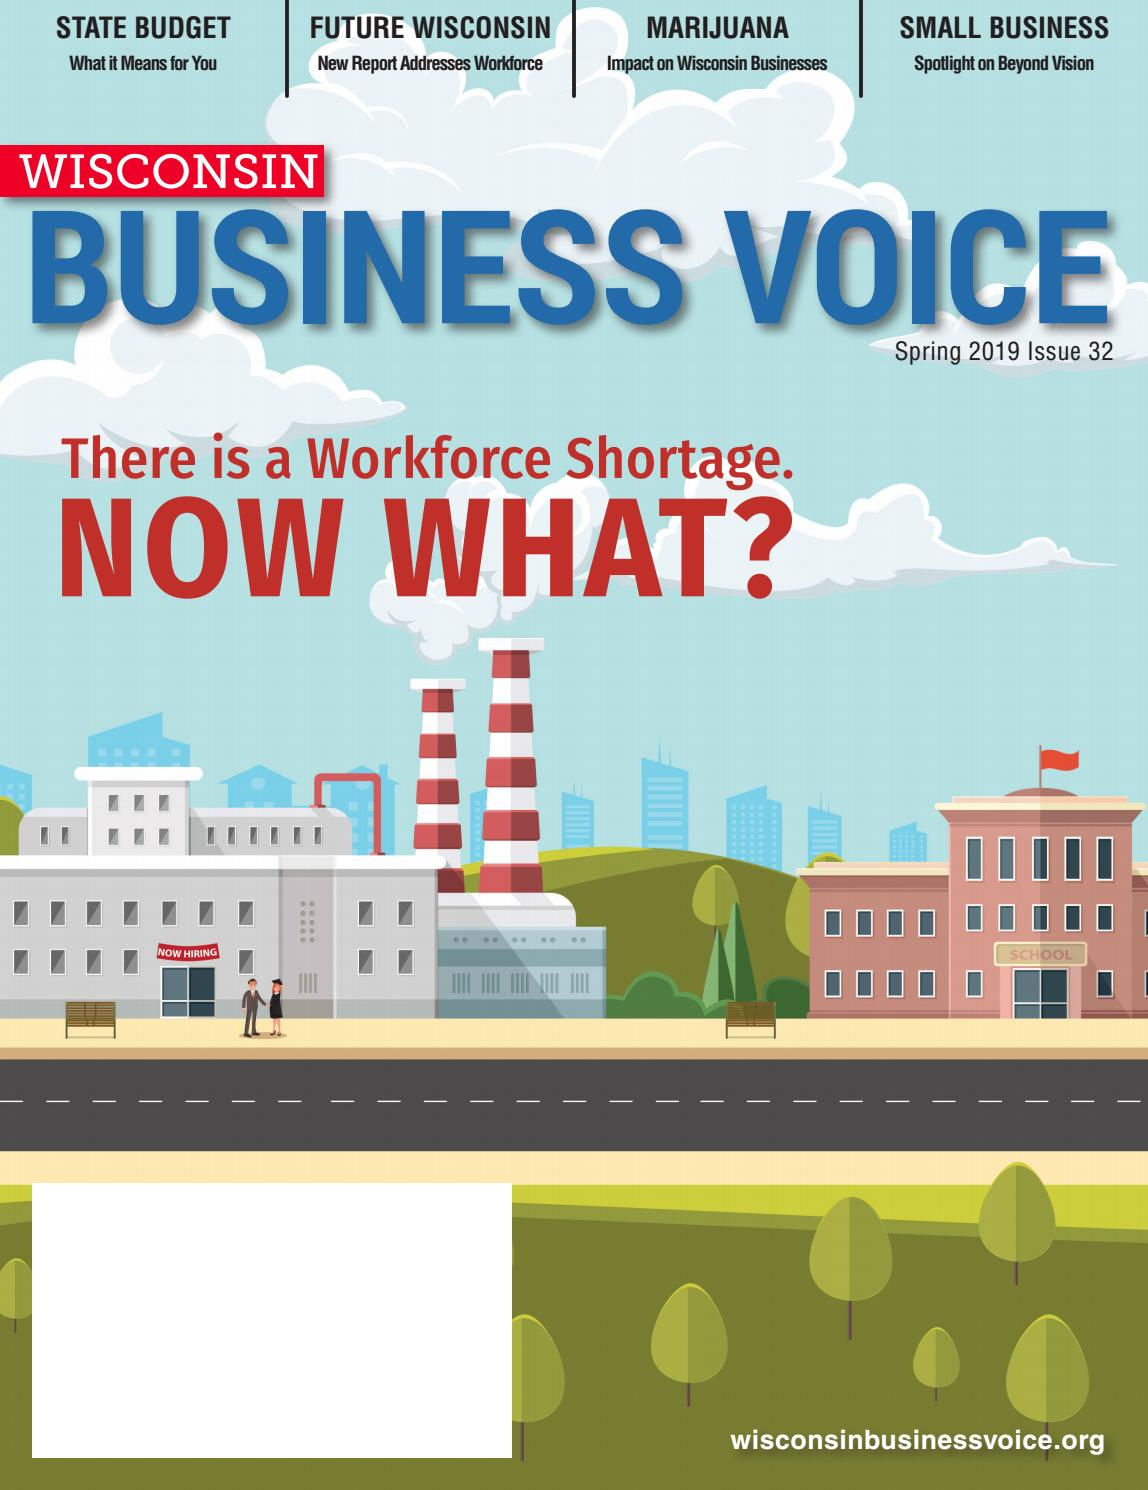 Why Blue Eyed Wisconsinites Tended To >> Wisconsin Business Voice Spring 2019 By Wisconsin Manufacturers